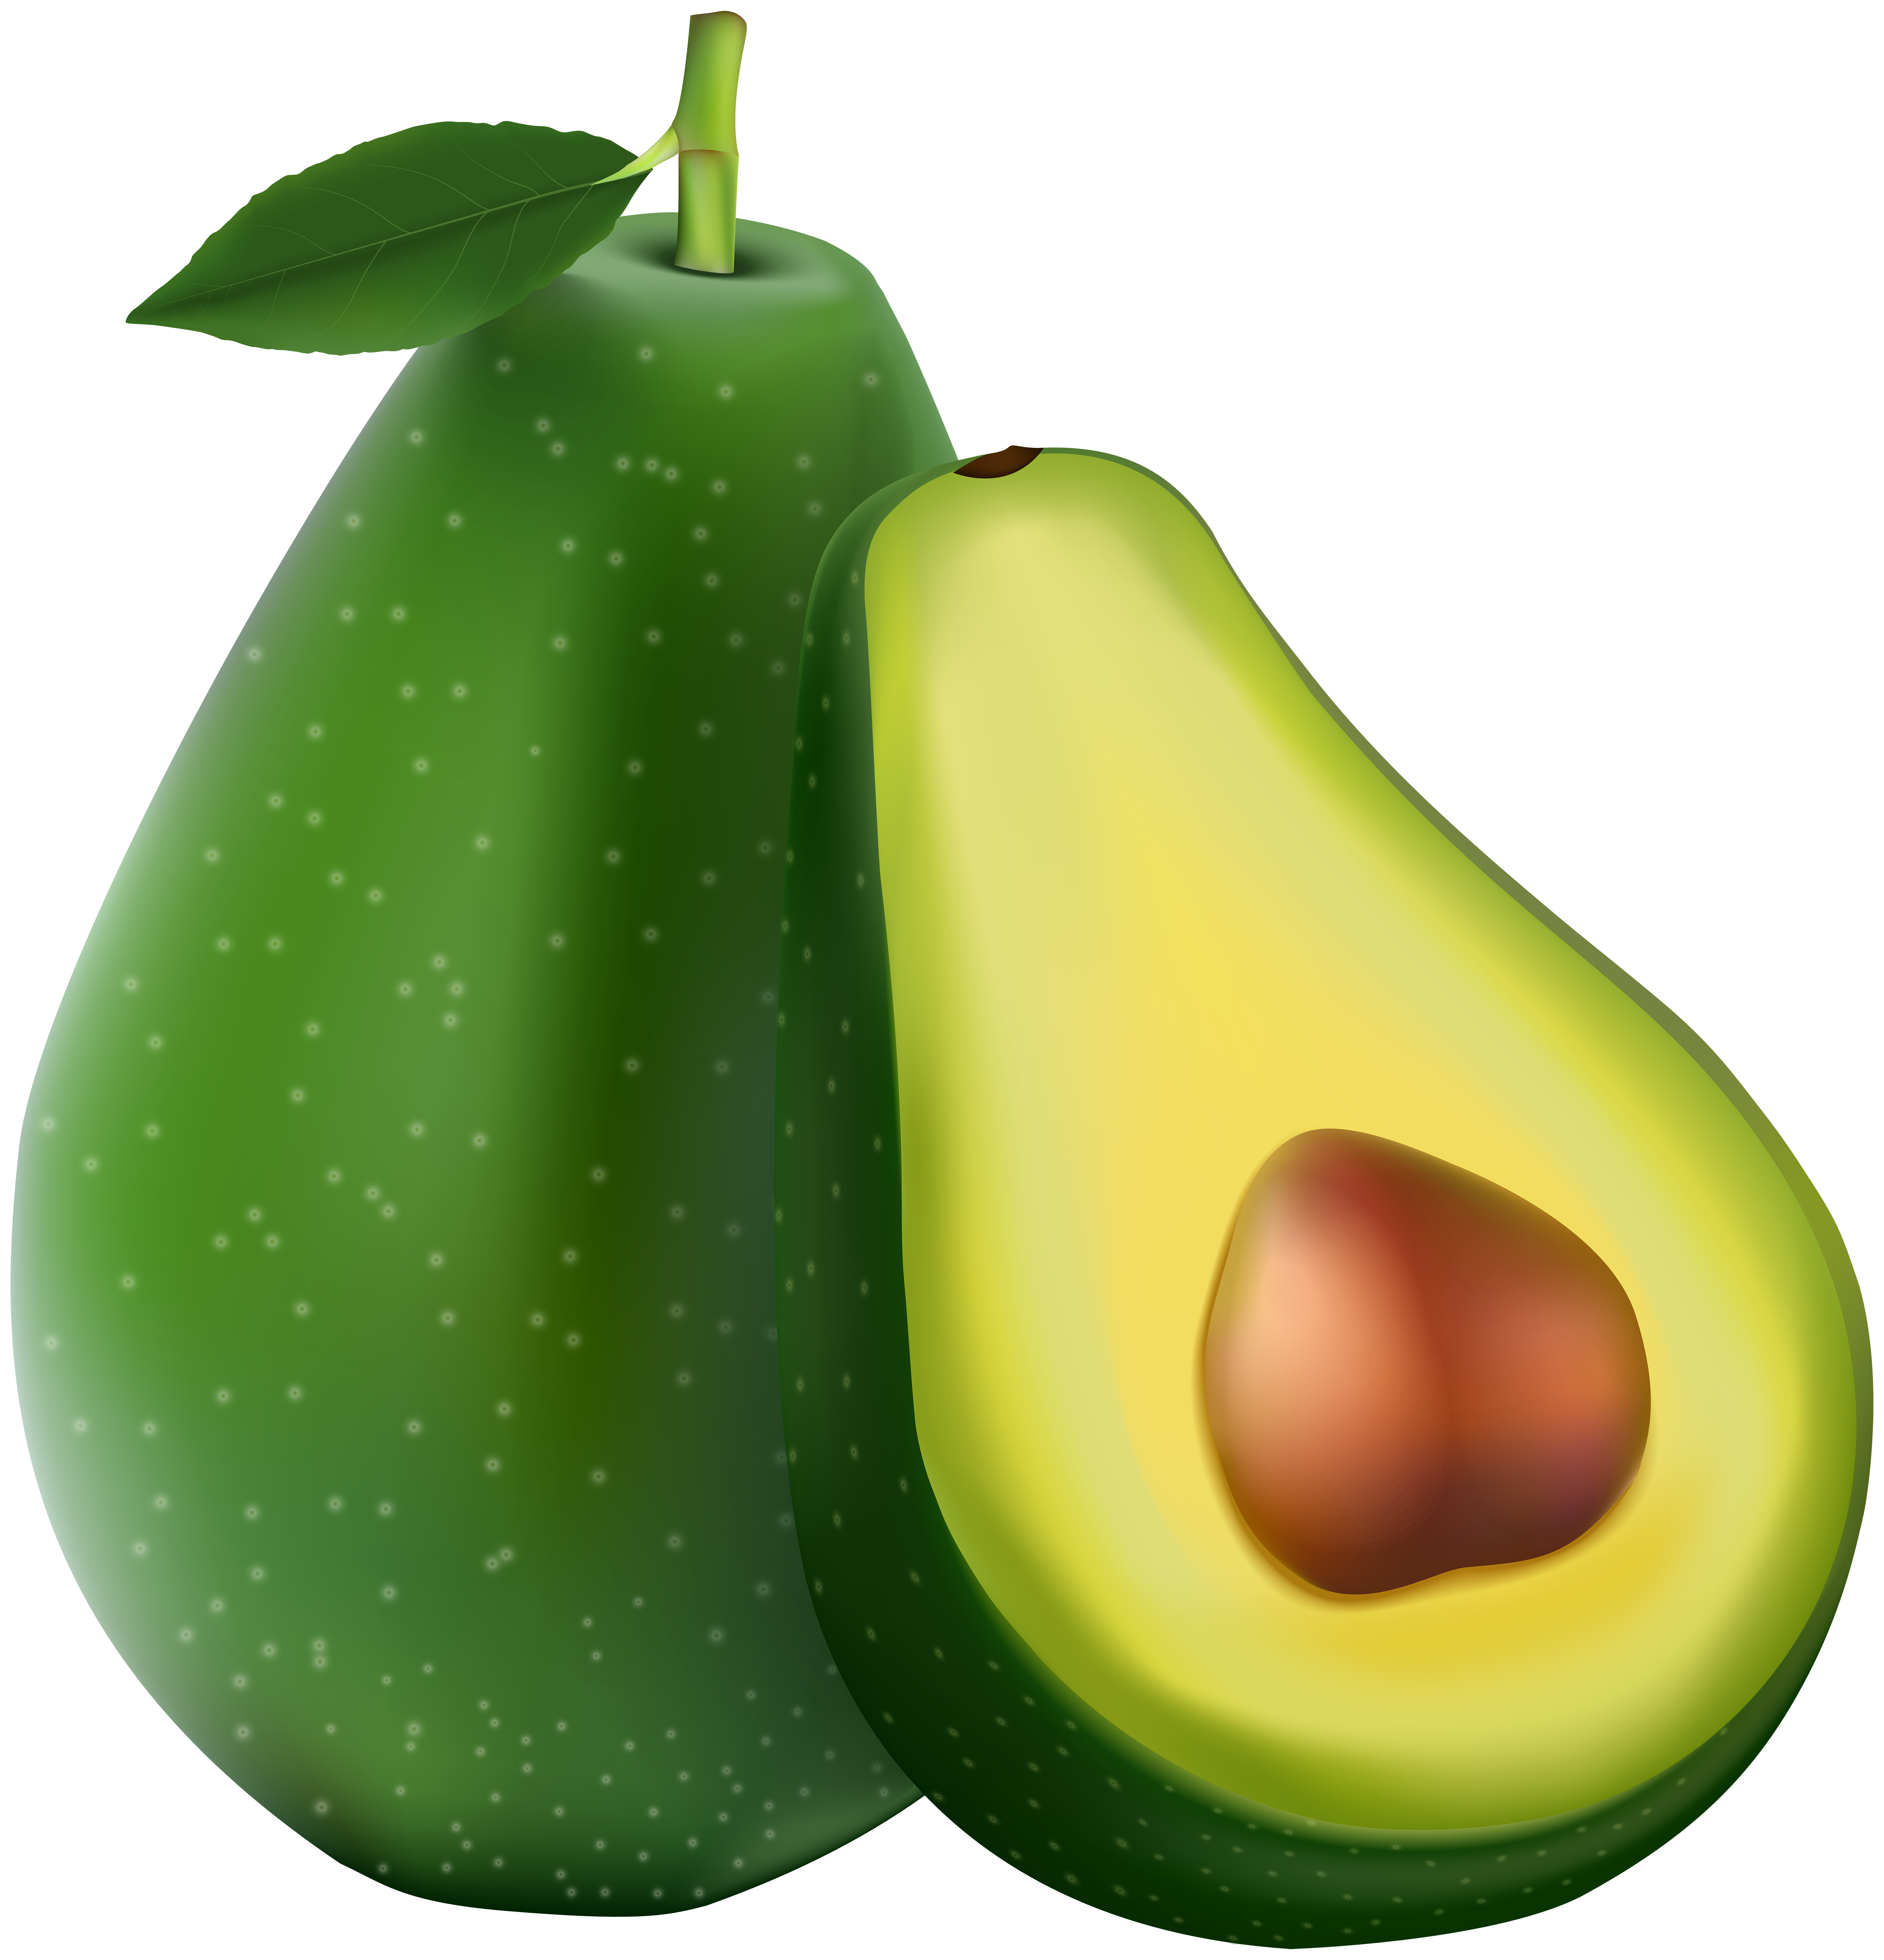 Avocado clipart. Transparent png image gallery